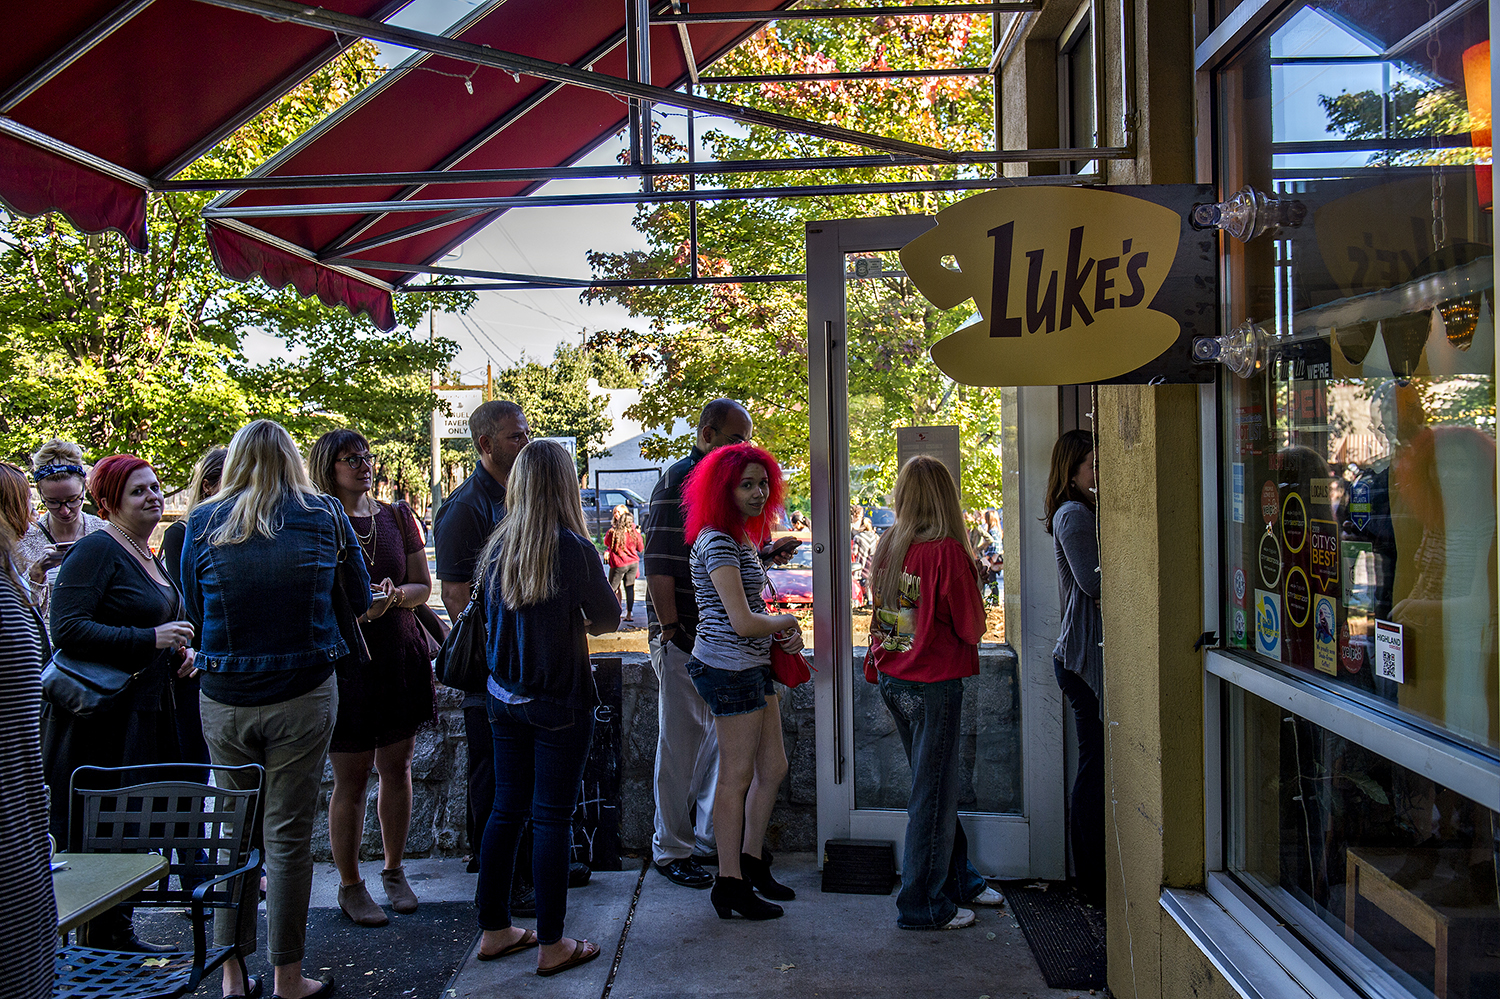 The line to get into the Luke's Diner pop-up at JavaVino.